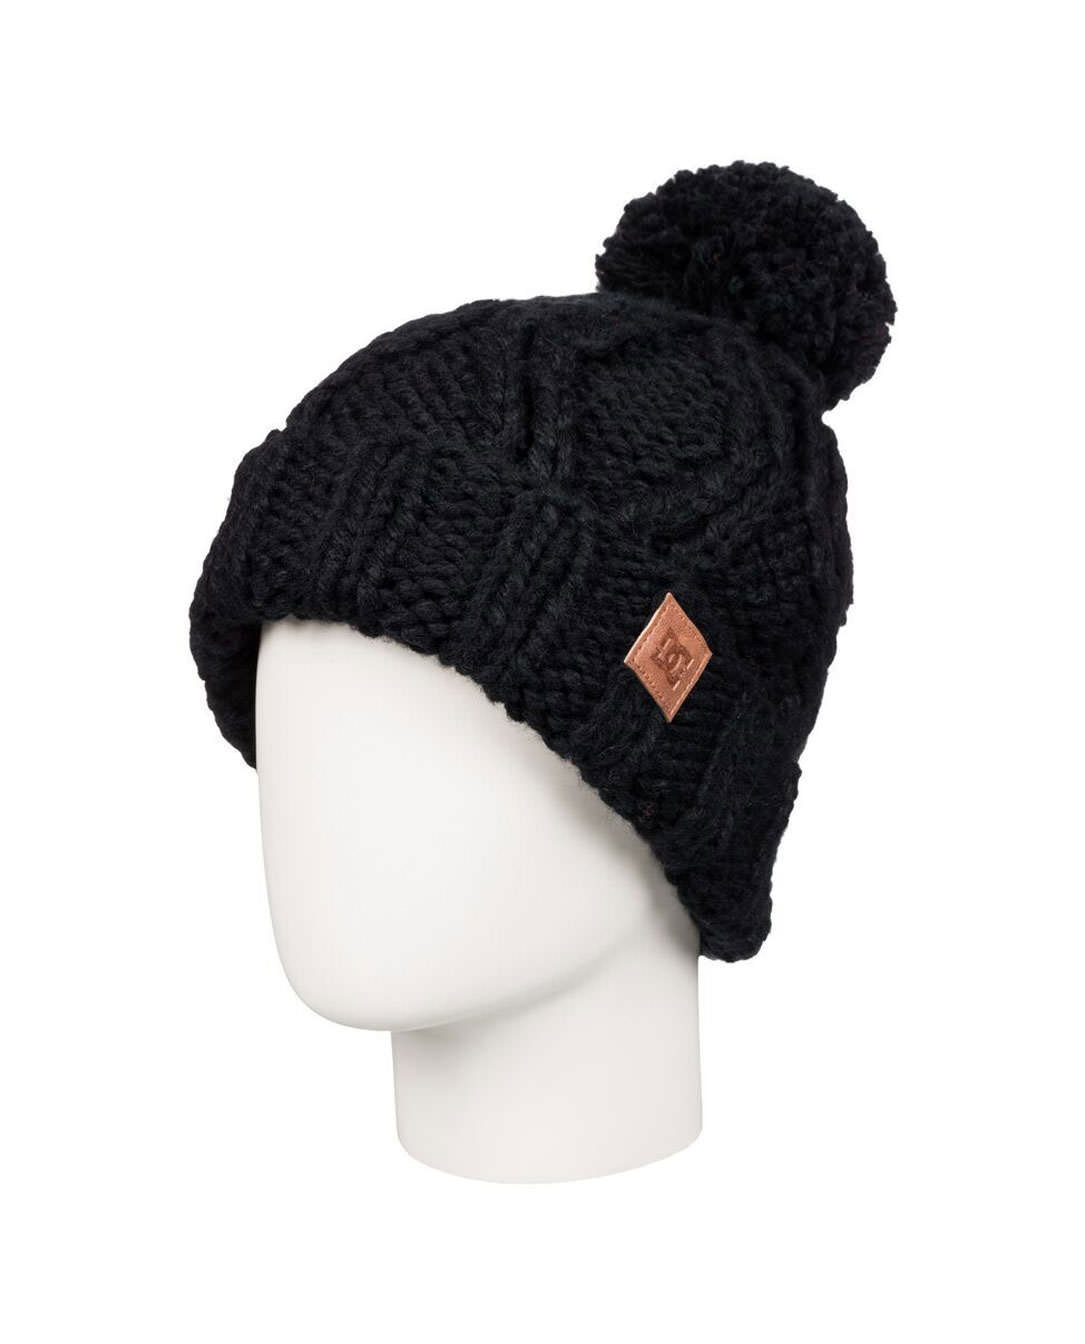 DC SHOES BEANIE WOMAN TAYCE KVJ0 - LM BOARD STORE